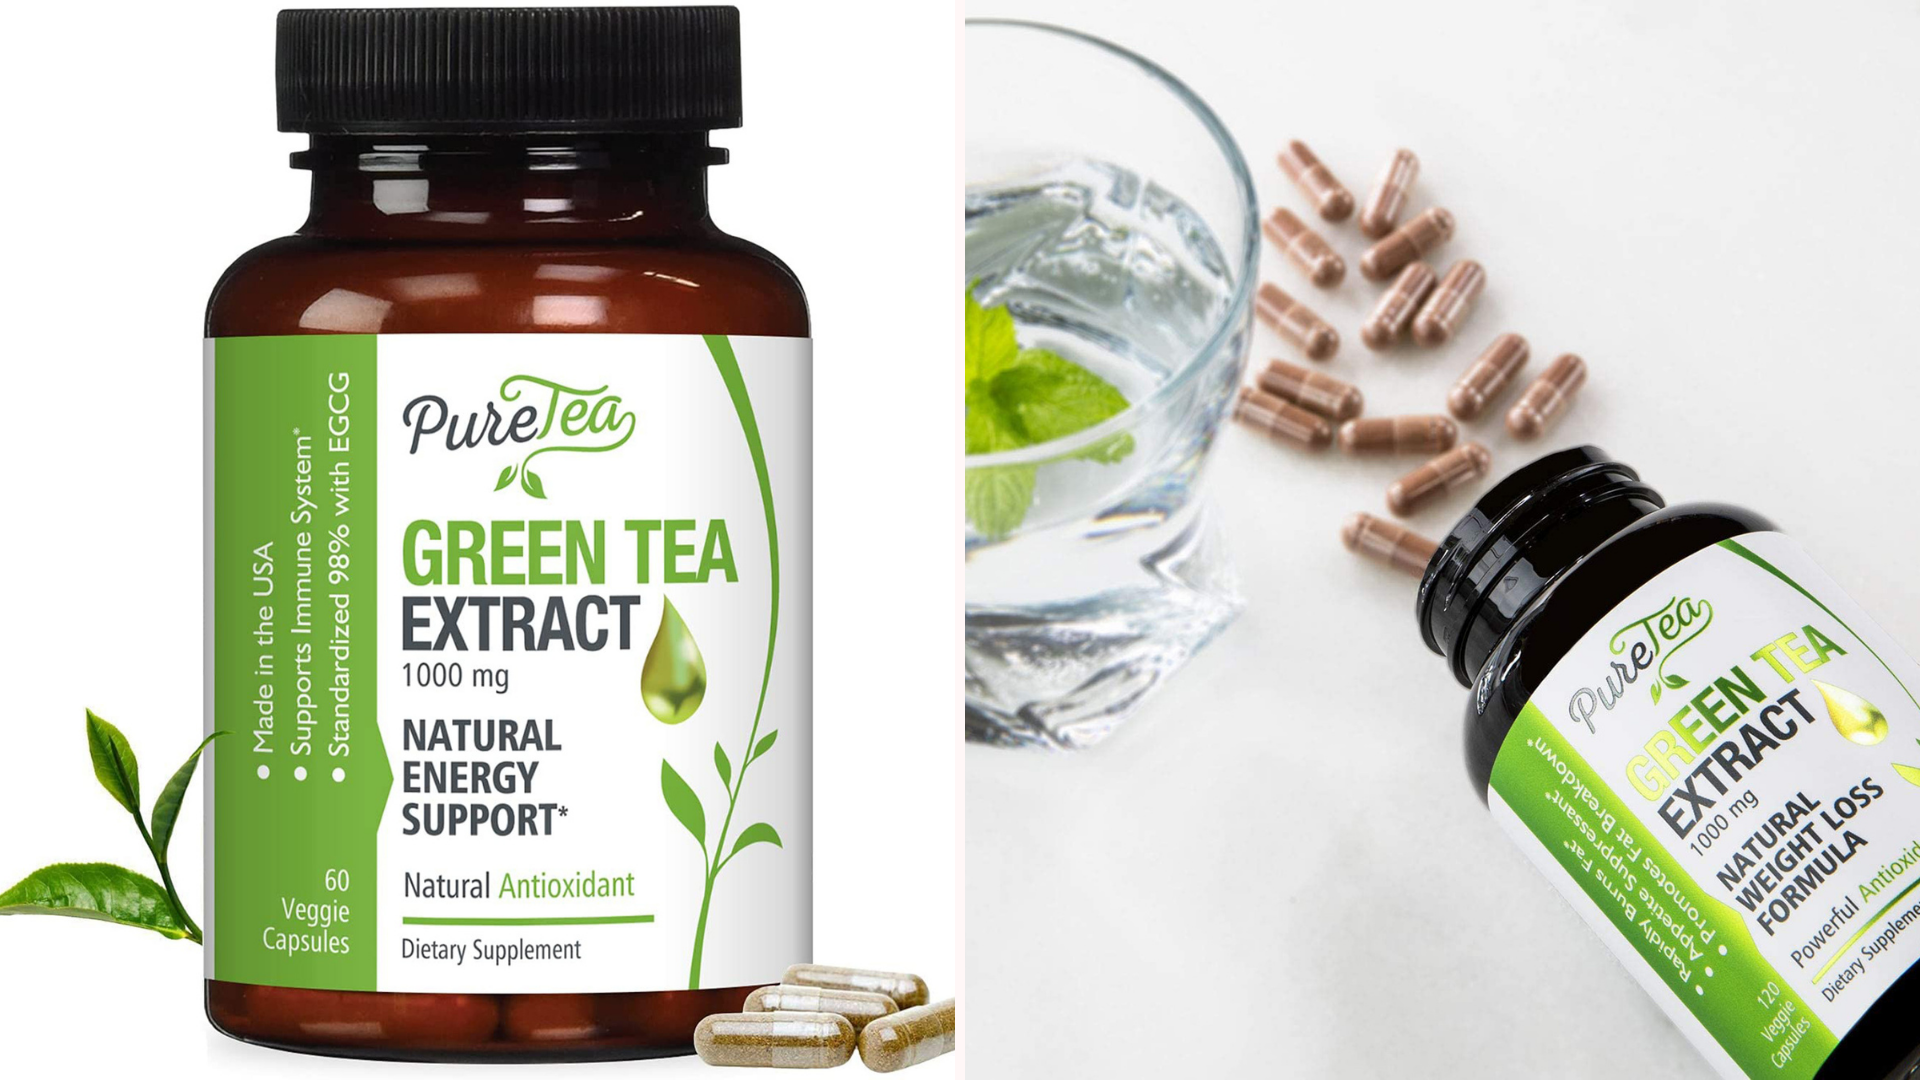 two-fold image of green tea extract supplements by Pure tea with a product shot on the left and an overhead shot of an open bottle laying flat on a white surface with capsules next to it as well as a glass of water with mint